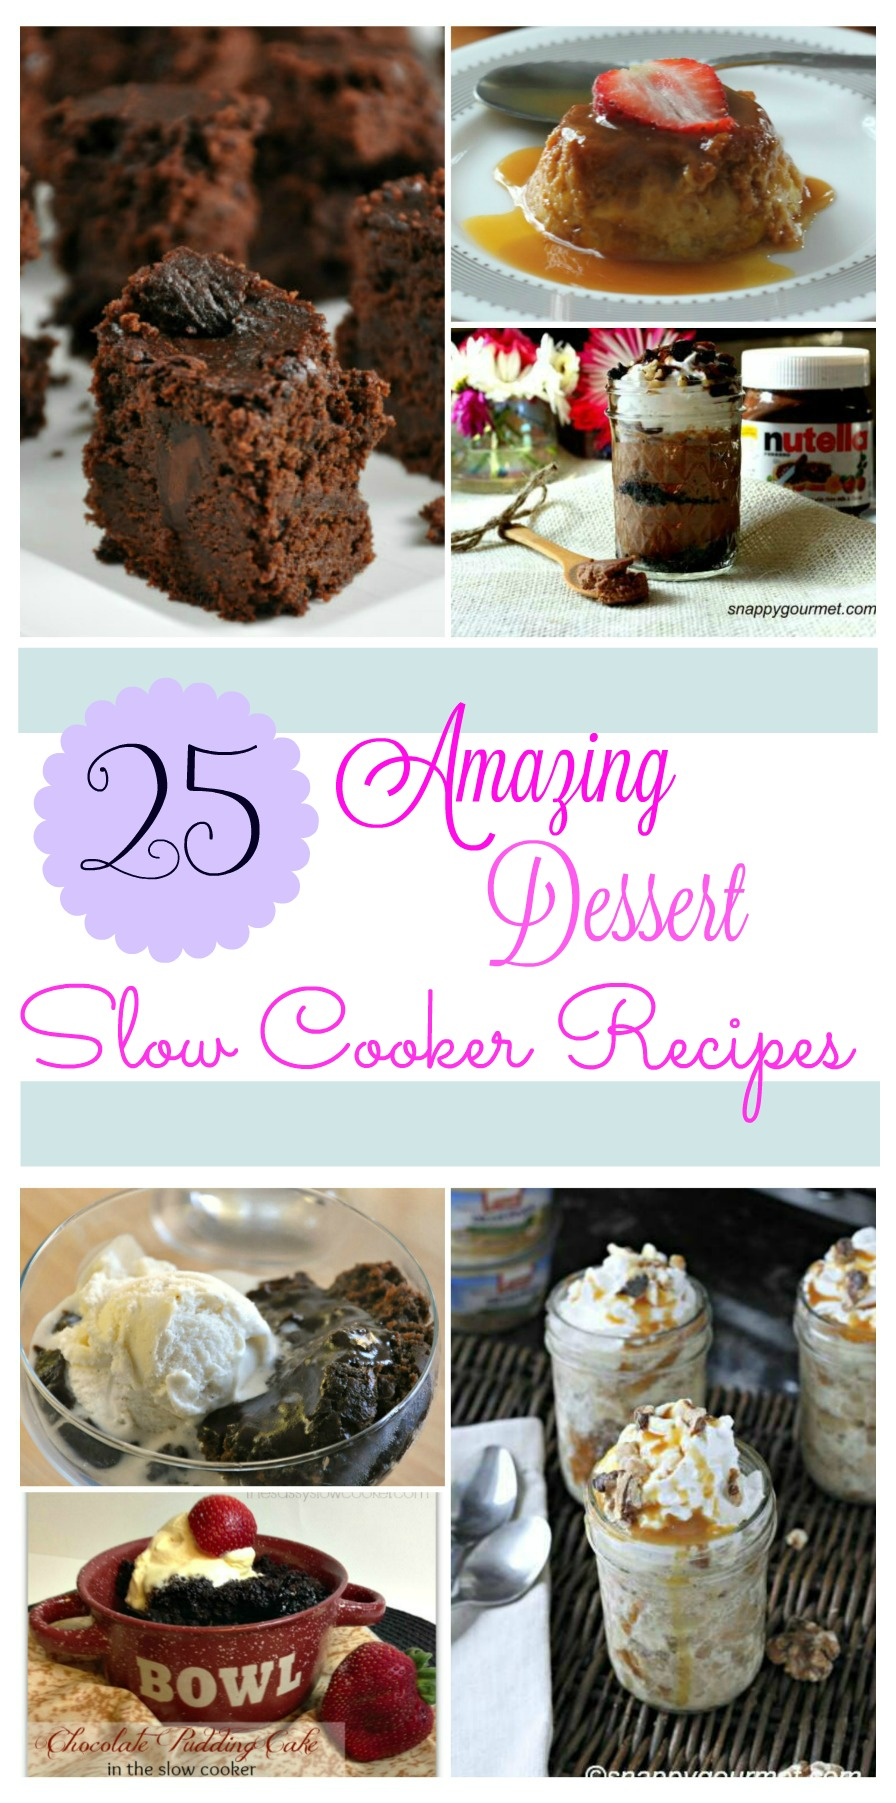 Looking for delicious dessert recipes for your slow cooker? Check out these 25 Amazing Dessert Slow Cooker Recipes that are perfect for any family!